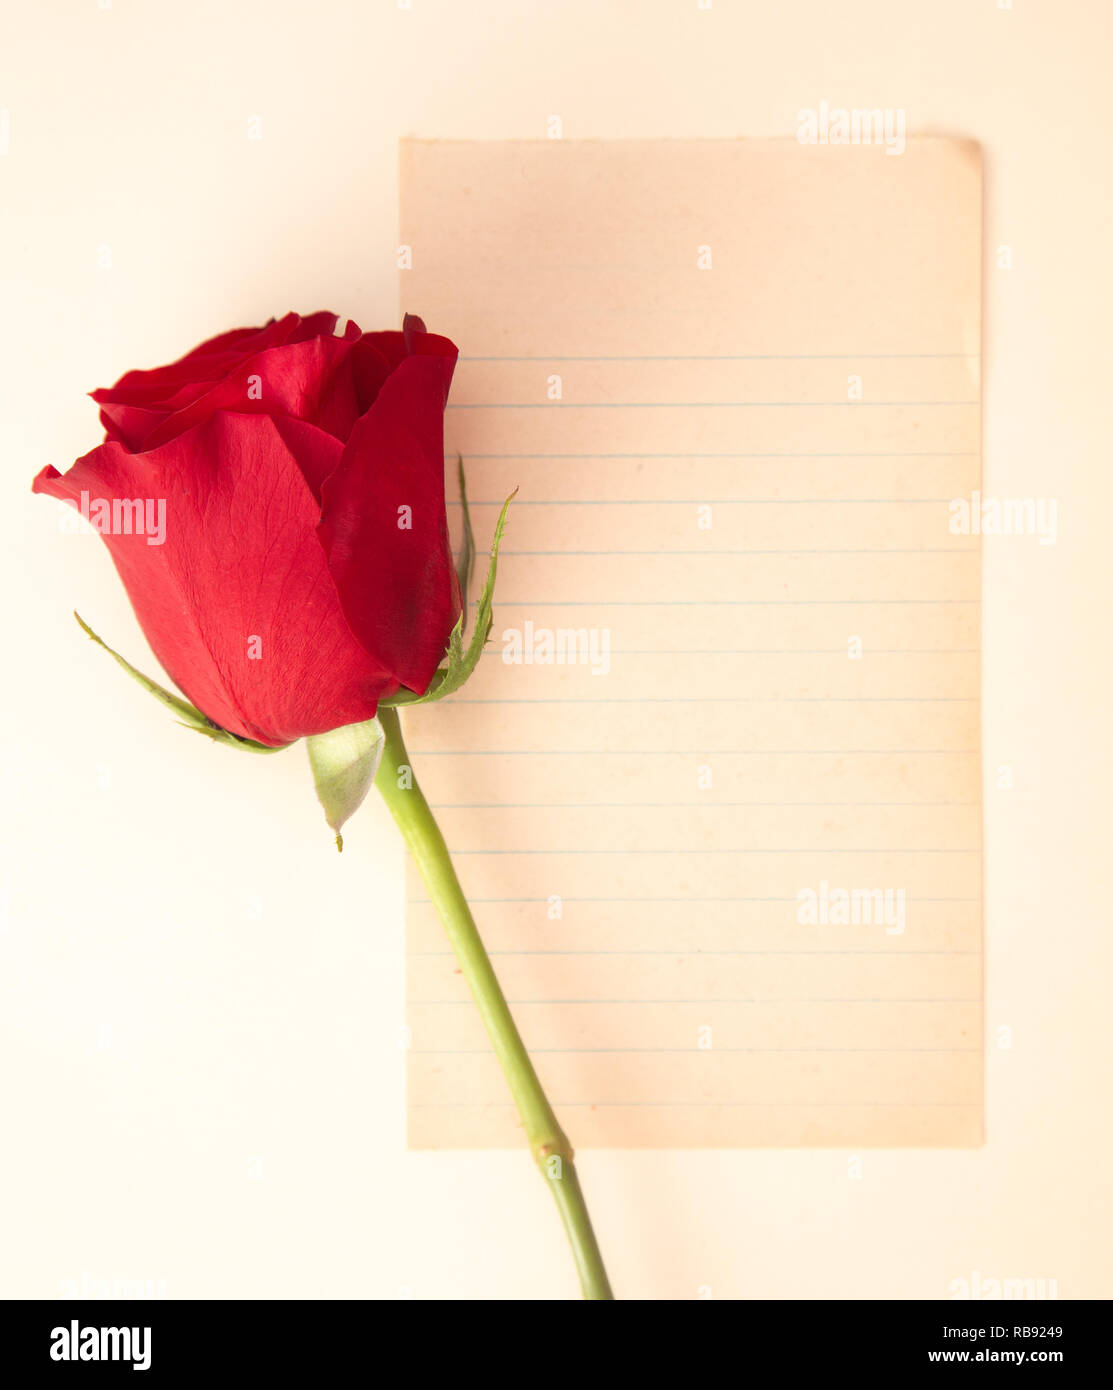 A Single Rose with a Blank Page for Writing a Love Note - Stock Image